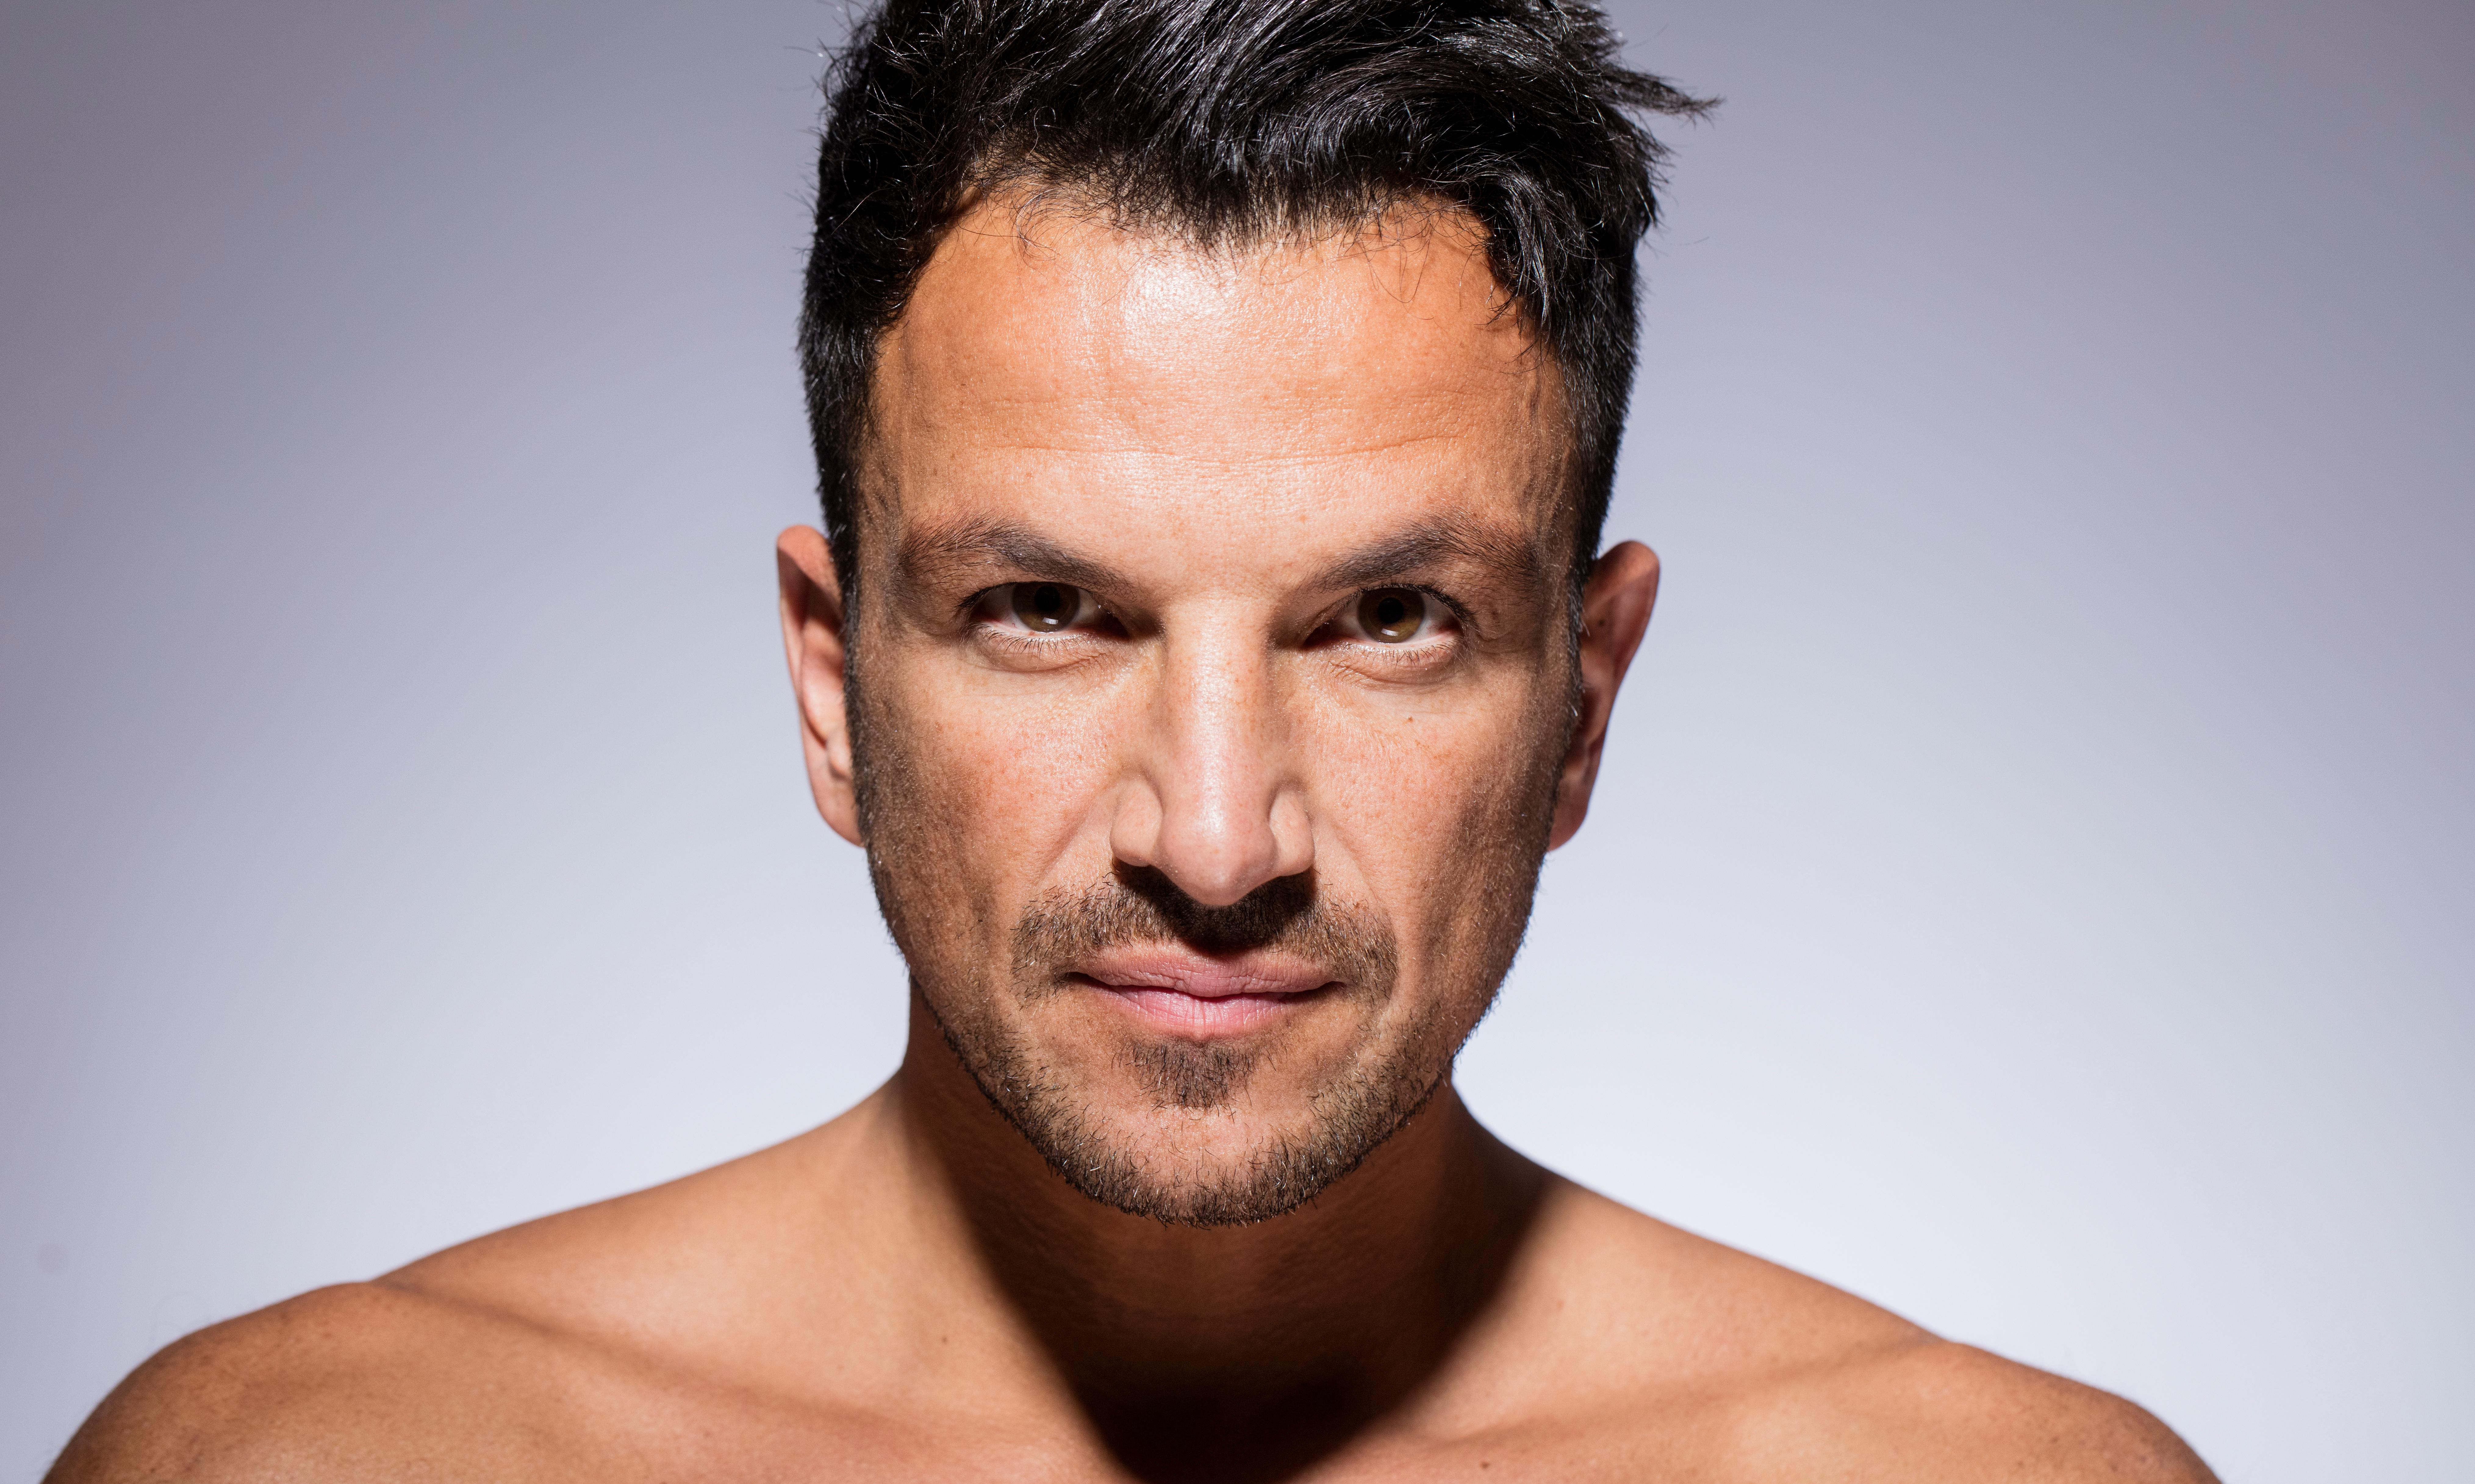 Peter Andre: 'I remember praying to God: please get me through this day'